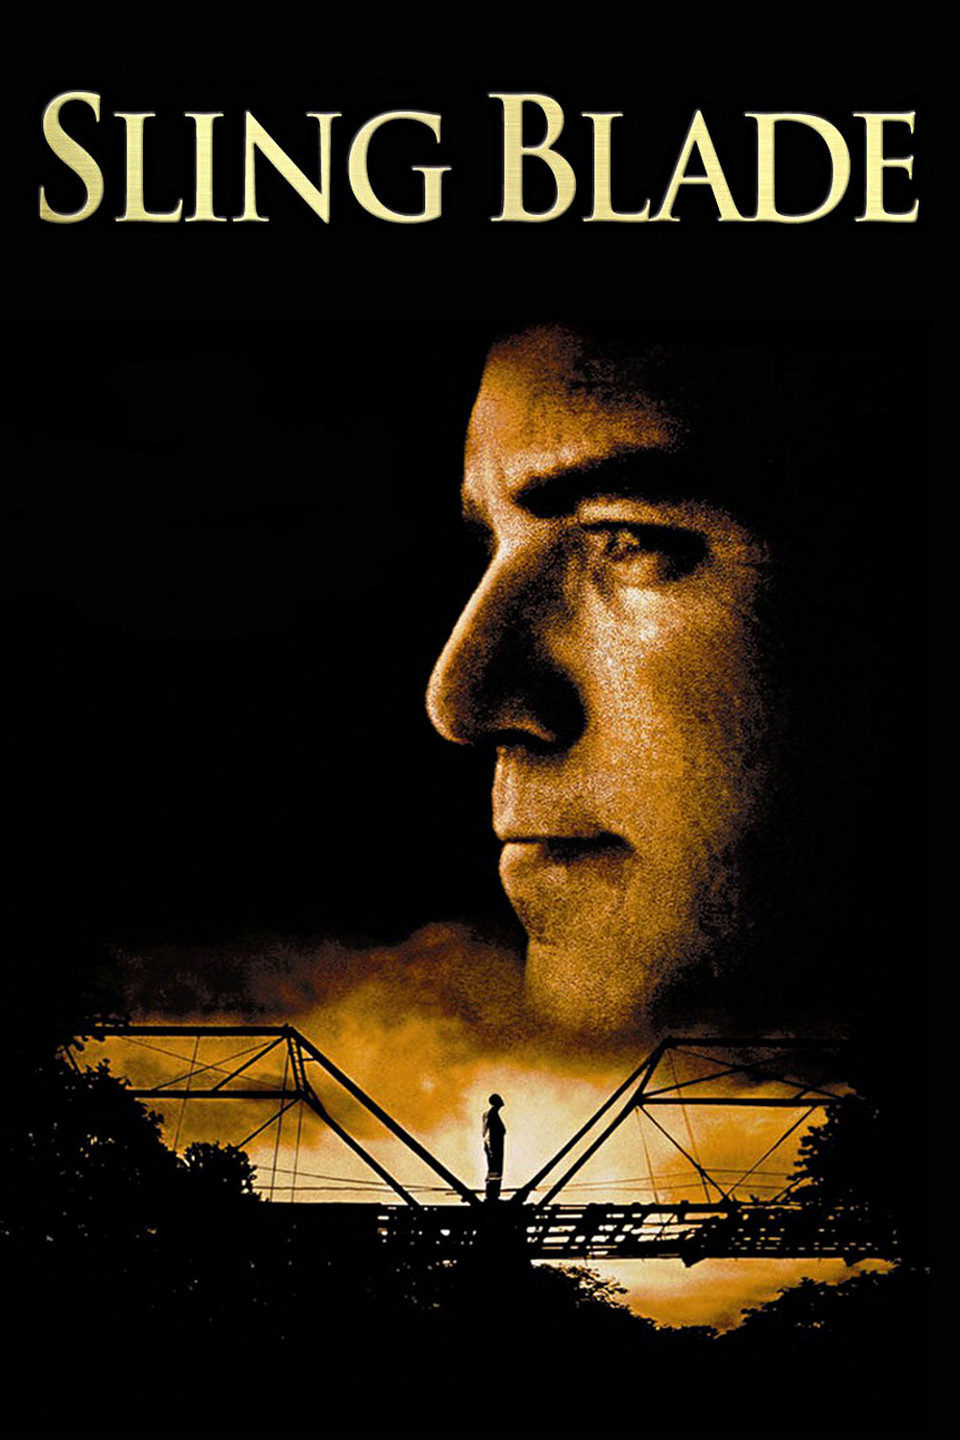 EEUU poster for Sling Blade